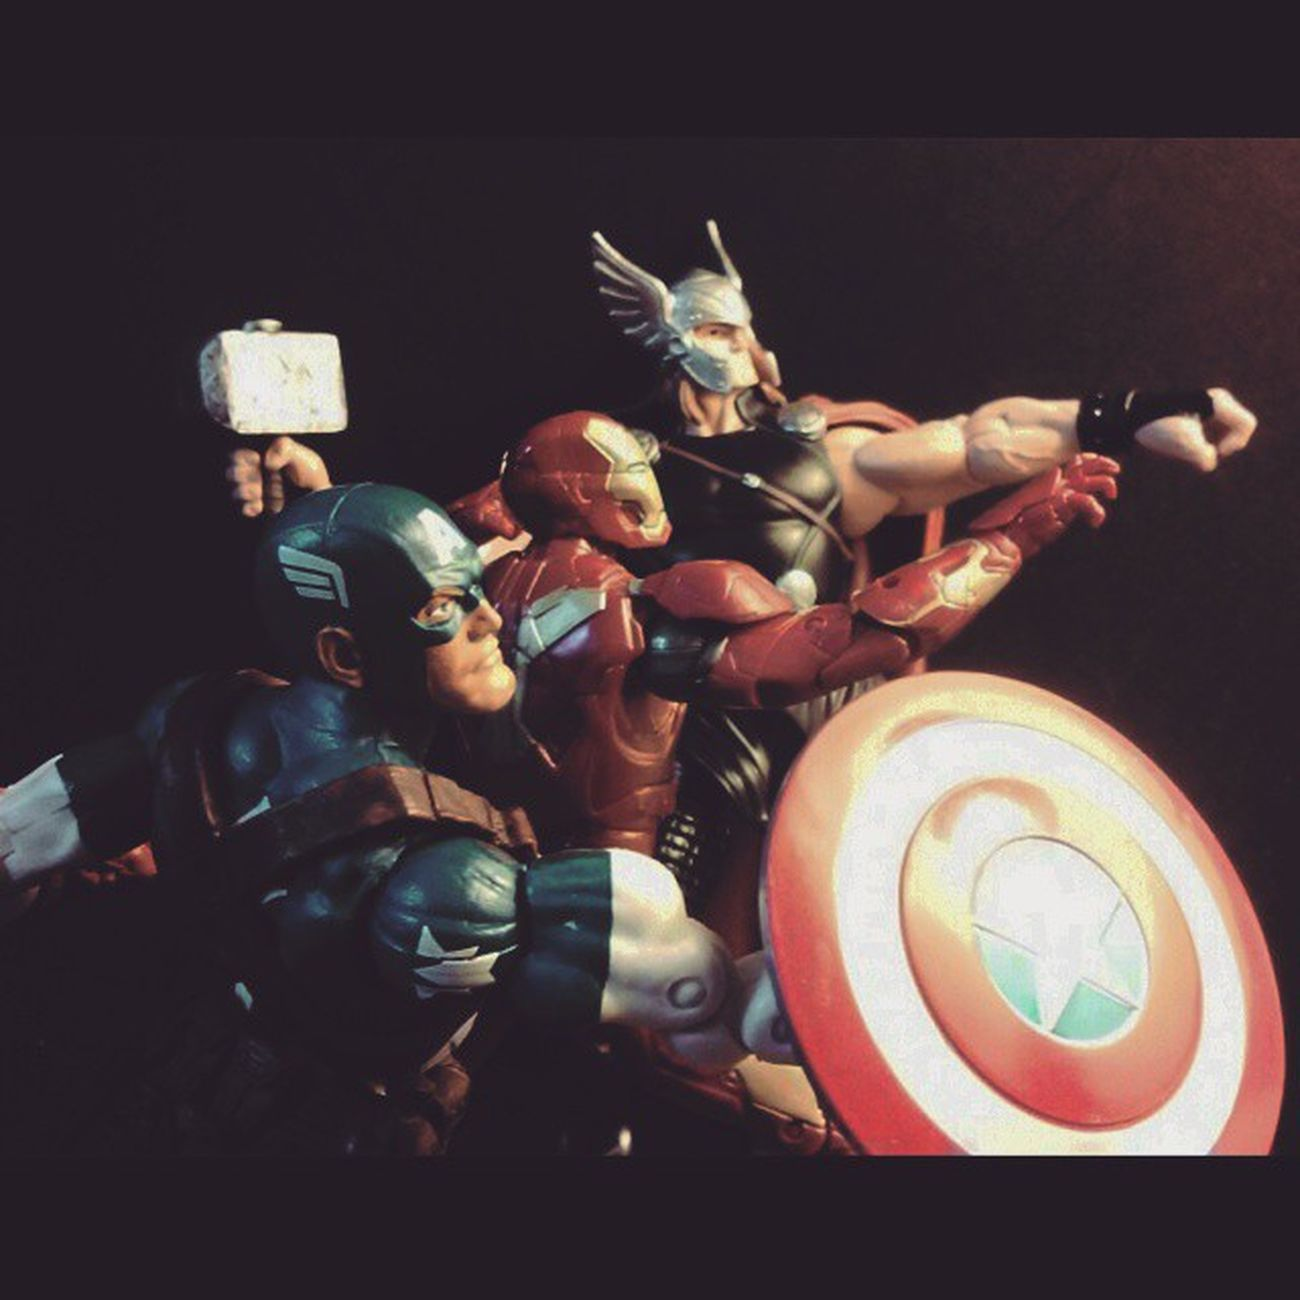 The Avengers Trinity Marvellegends Infiniteseries Ageogultron Captainamerica Thor  Mcu Ironman Manchild Disney Steverodgers Avengers Theavengers Tonystark Baf Marvelentertainment Hasbro Collection Collector Mark43 Articulatedcomicbook Actionfigures Figurecollection Figurelife Nerd Comics actionfigurephotography tcb_flyupandaway